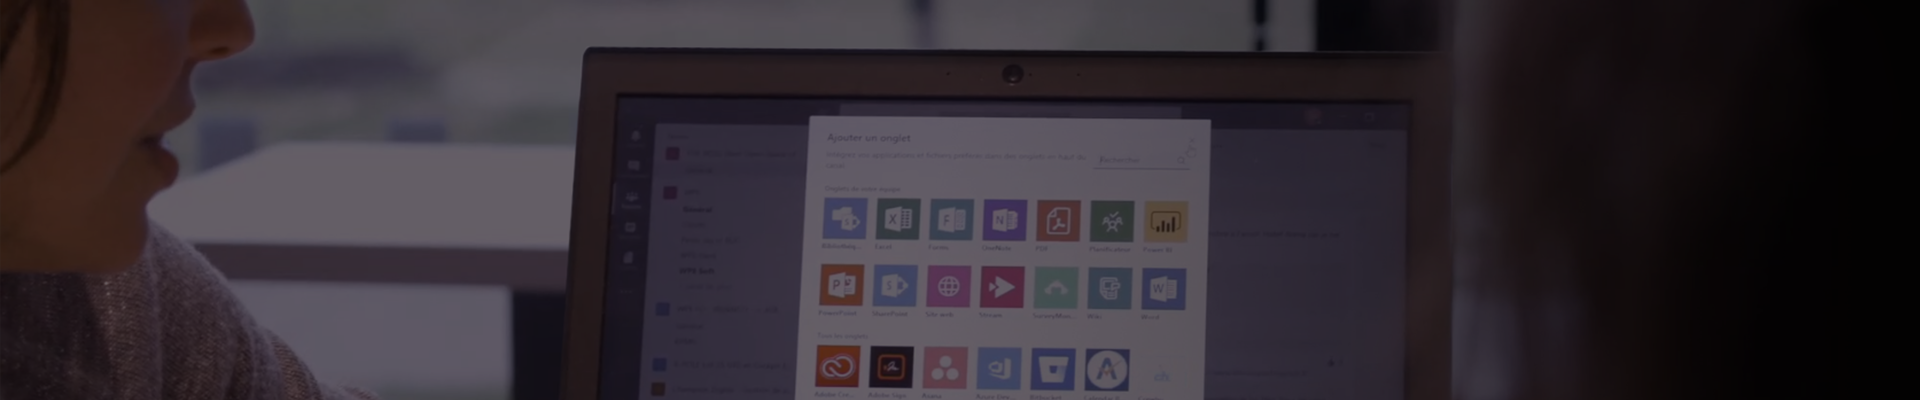 Muted still image from video about Schneider Electric and Microsoft Teams showing a person looking at a grid of app icons on a display monitor